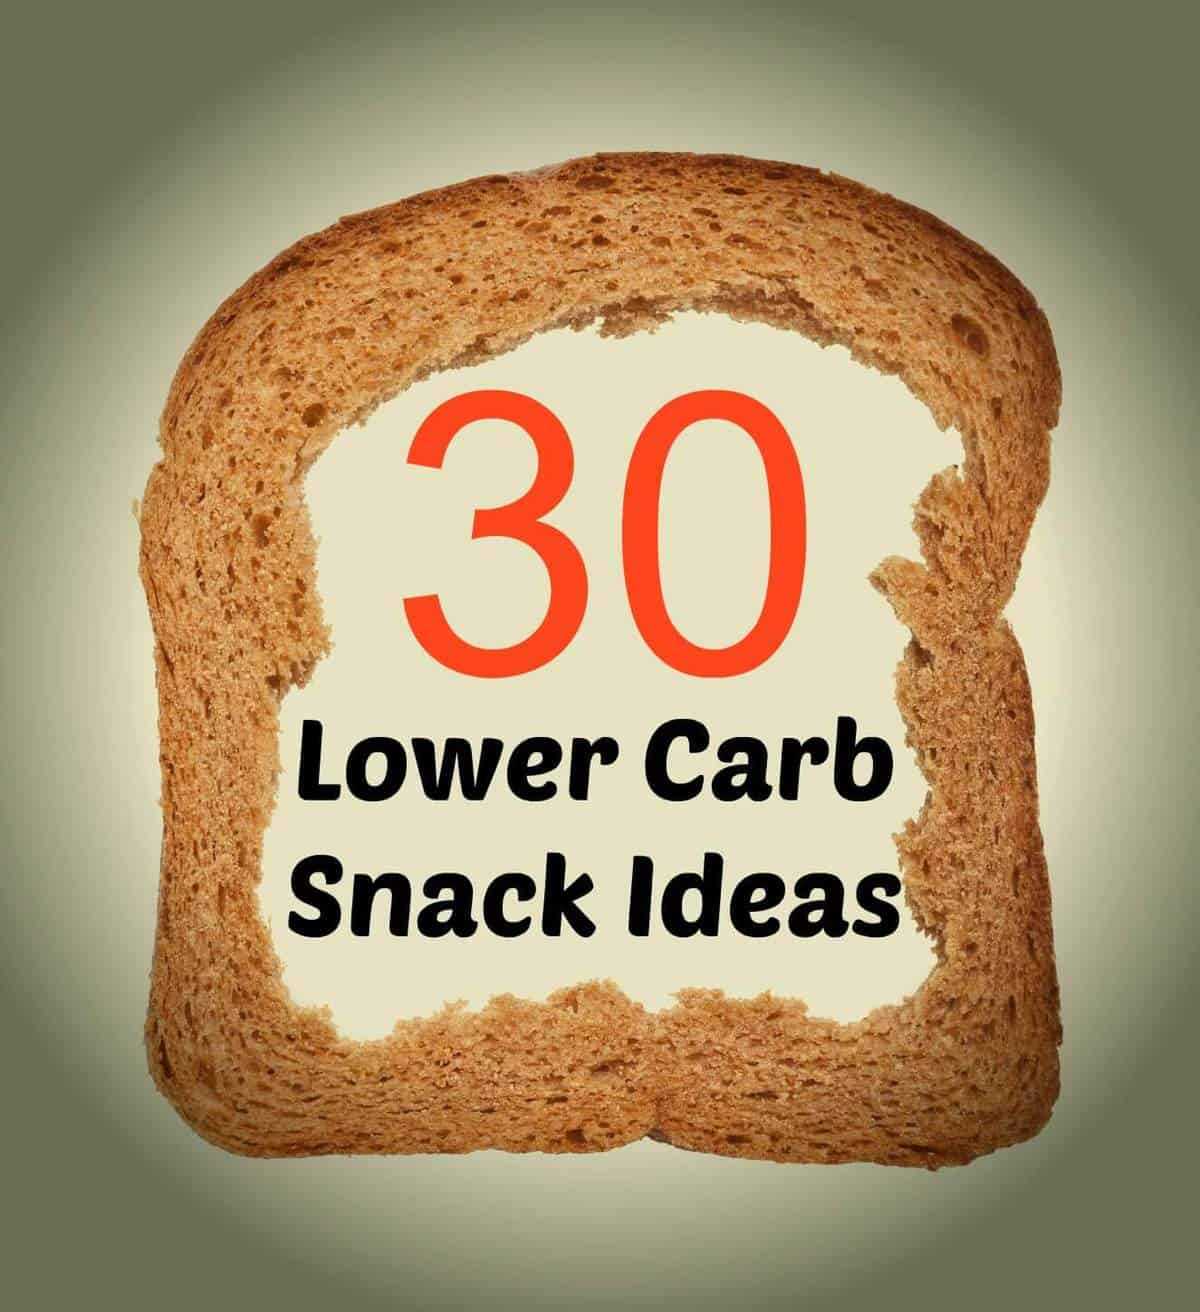 Good low carb snacks for work